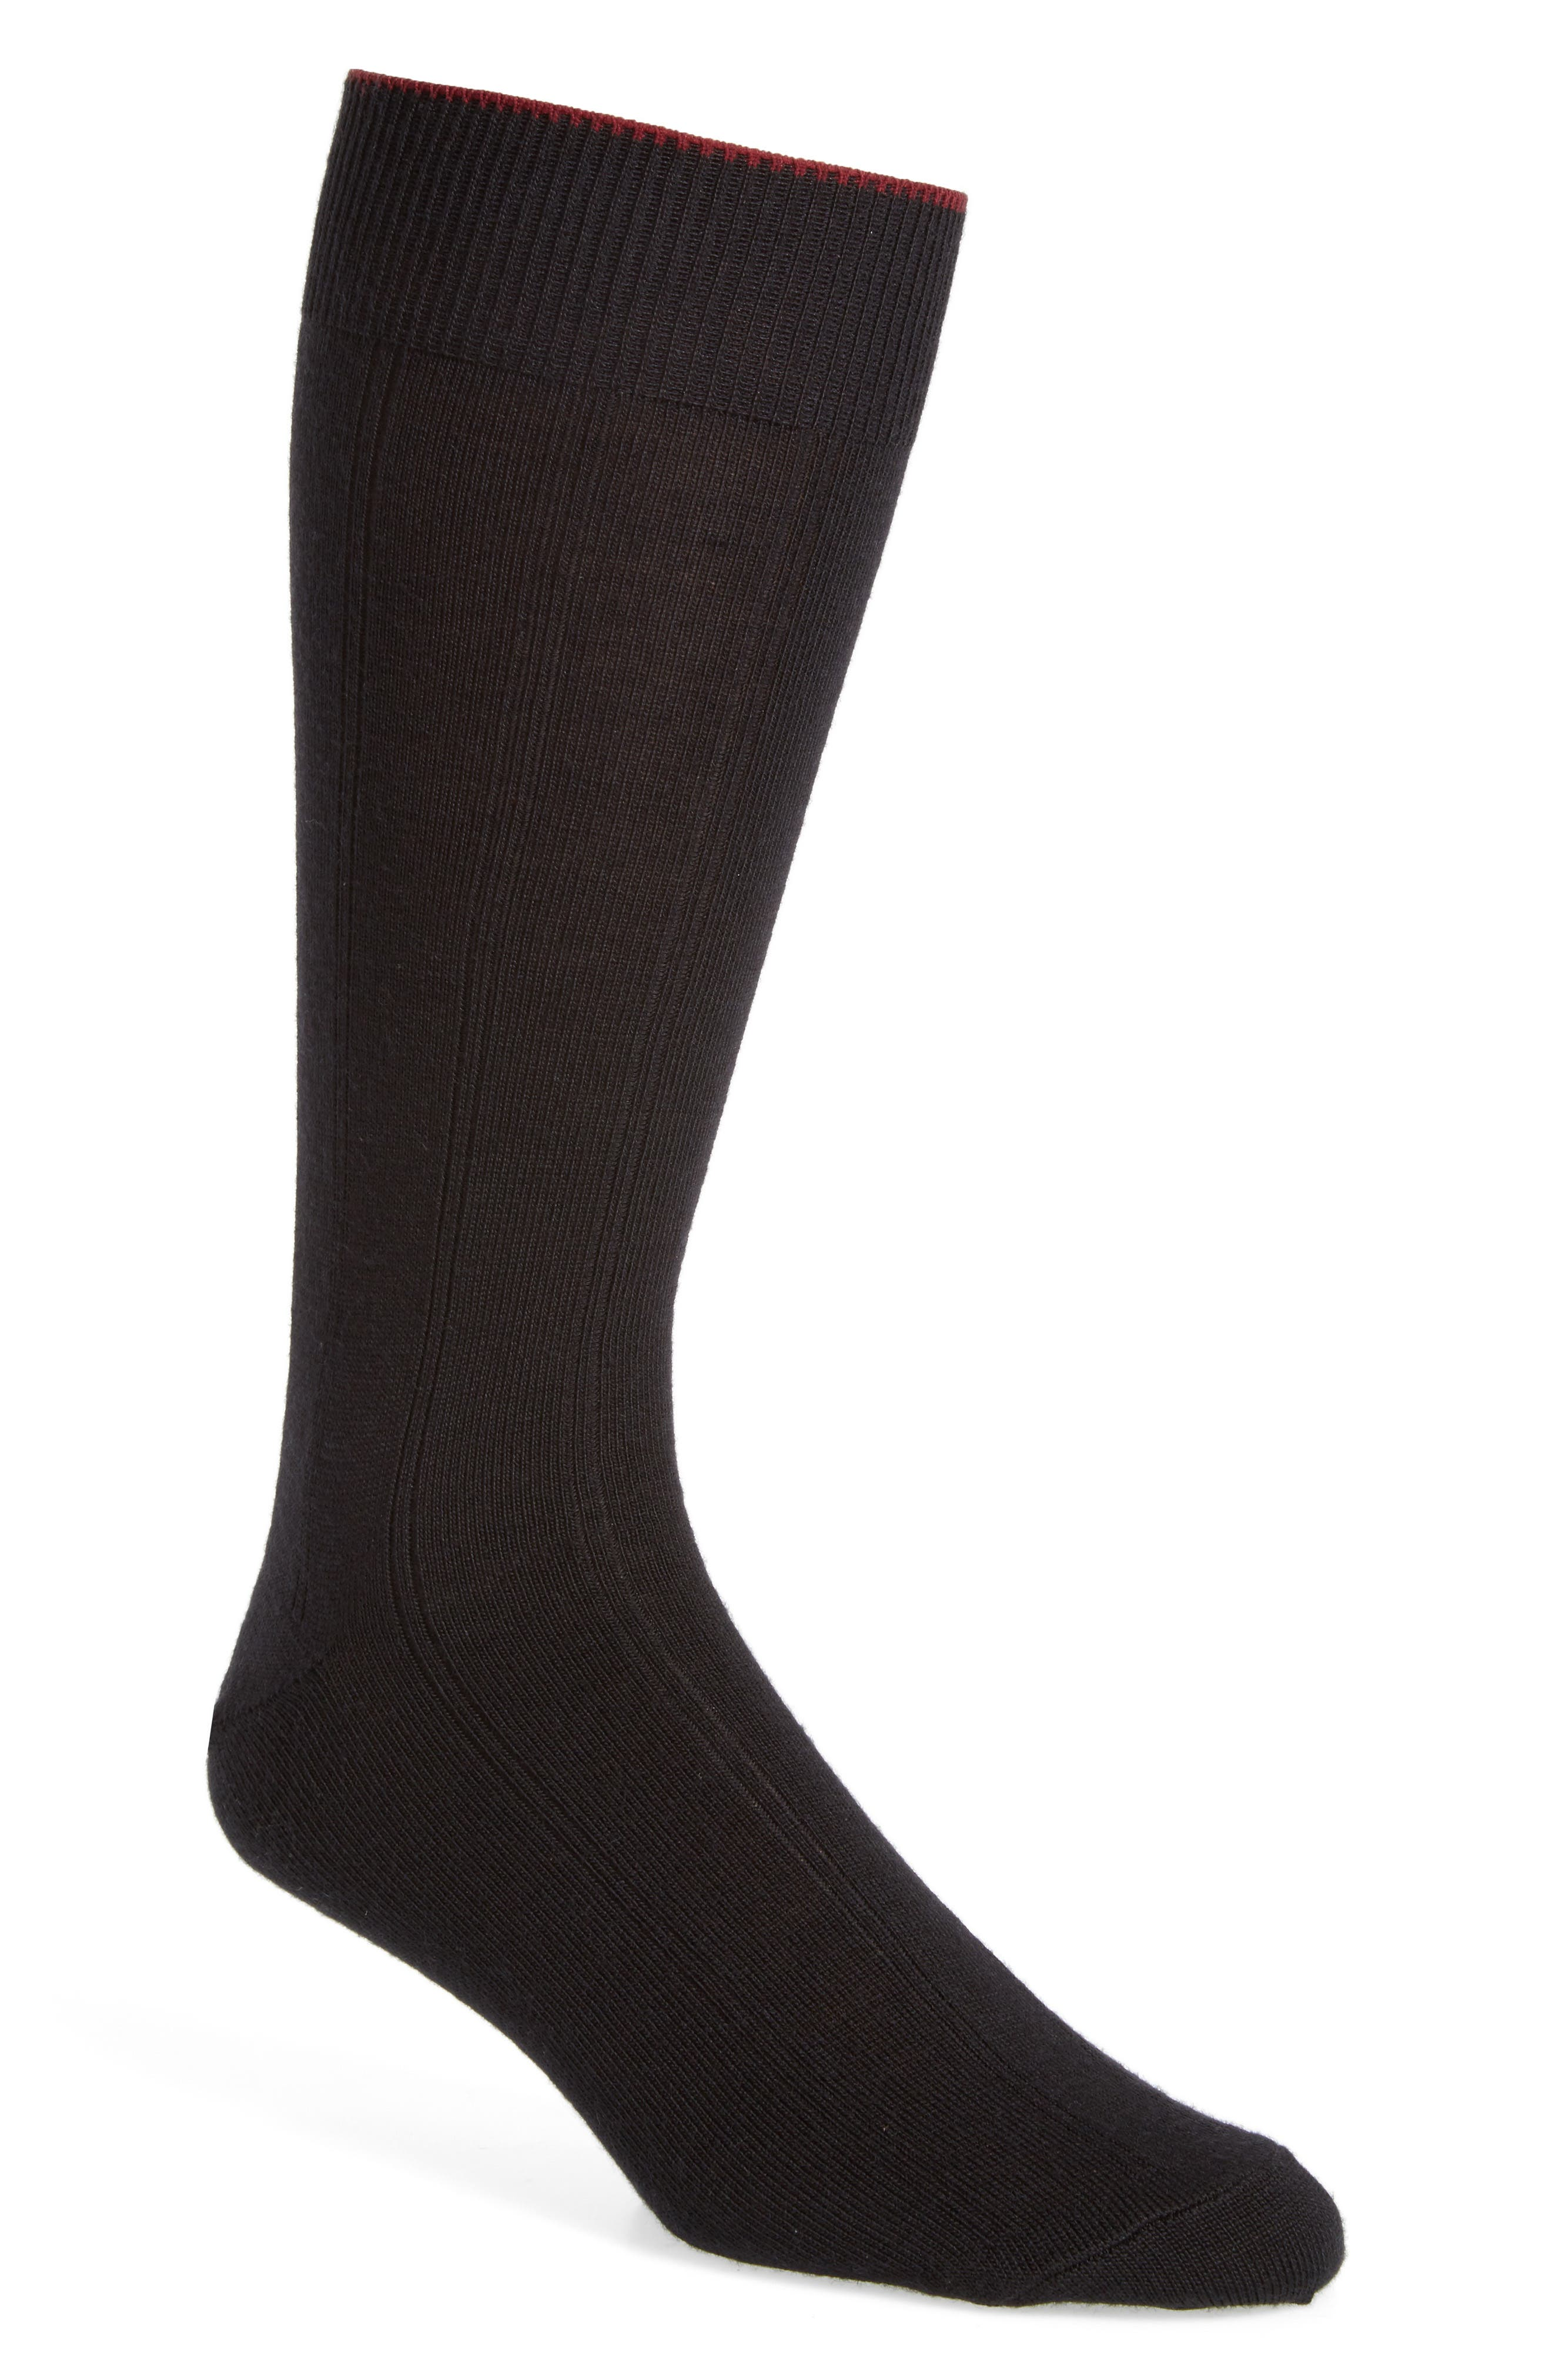 Alternate Image 1 Selected - Nordstrom Mens Shop Rib Wool Blend Socks (Men) (3 for $30)